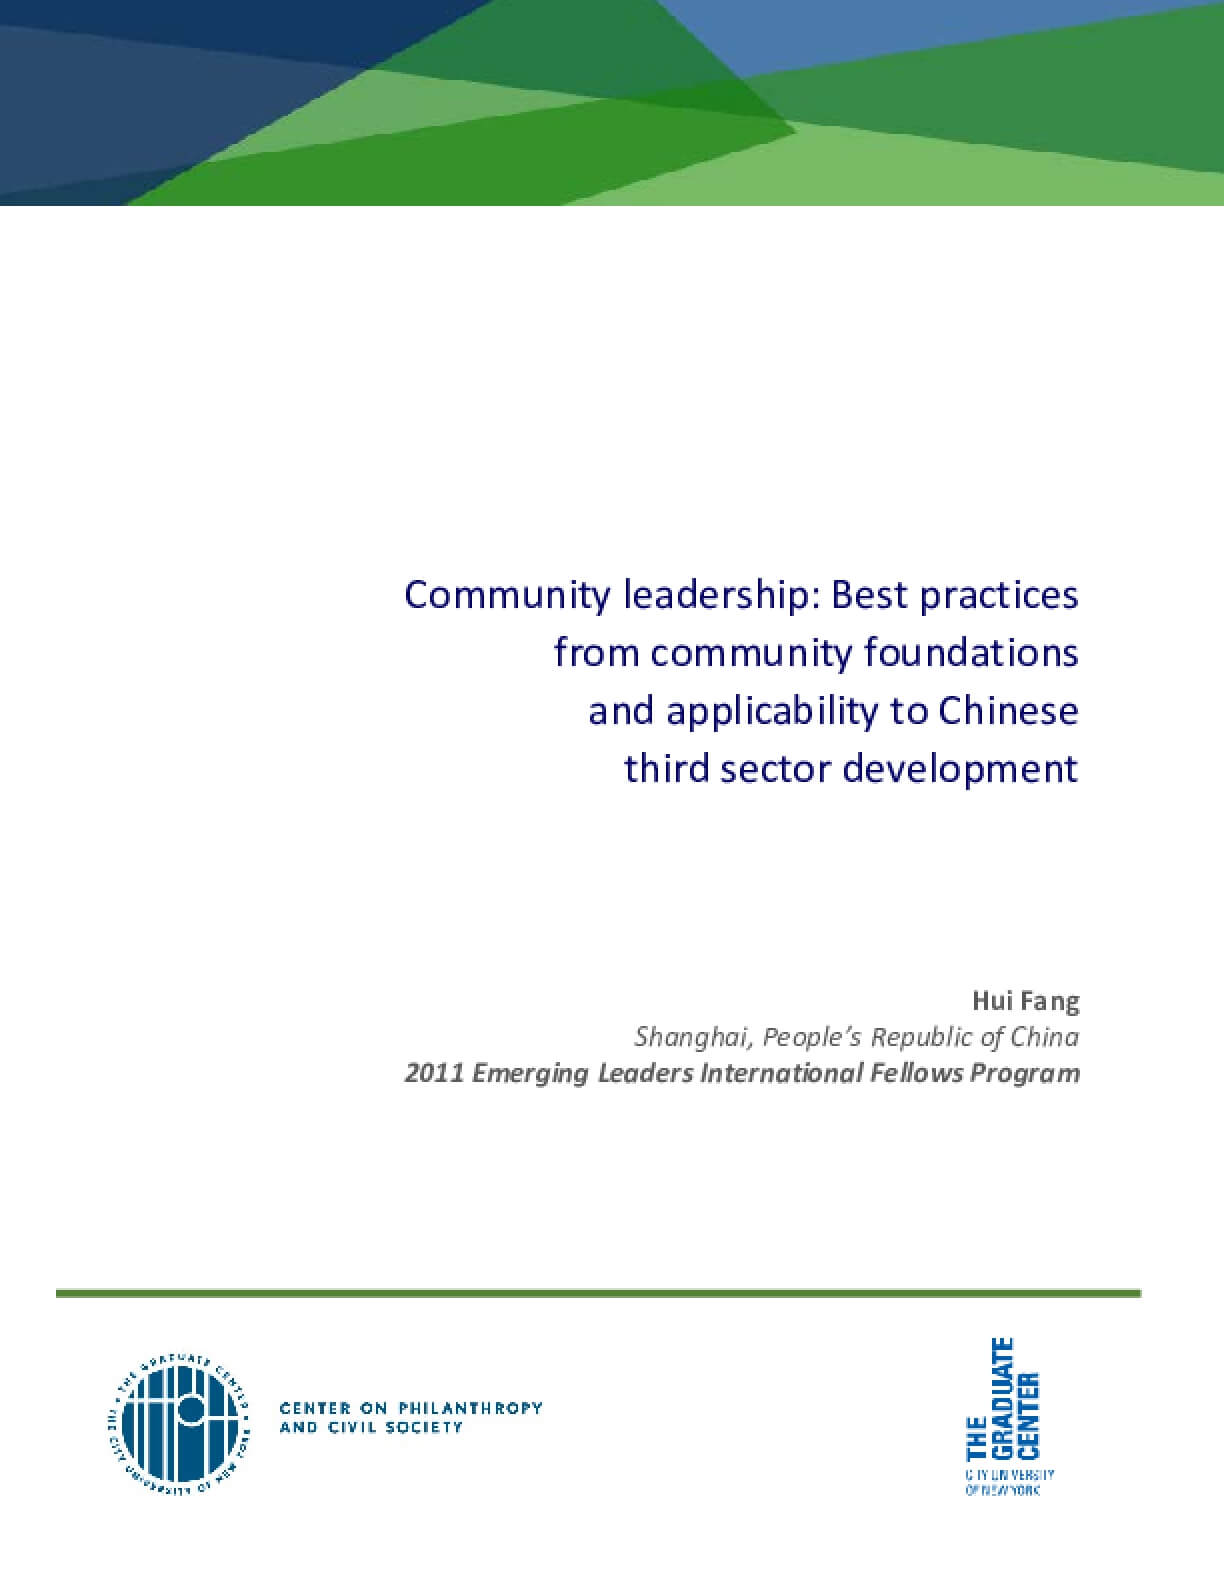 Community Leadership: Best Practices fromCommunity Foundations and Applicability toChinese Third Sector Development